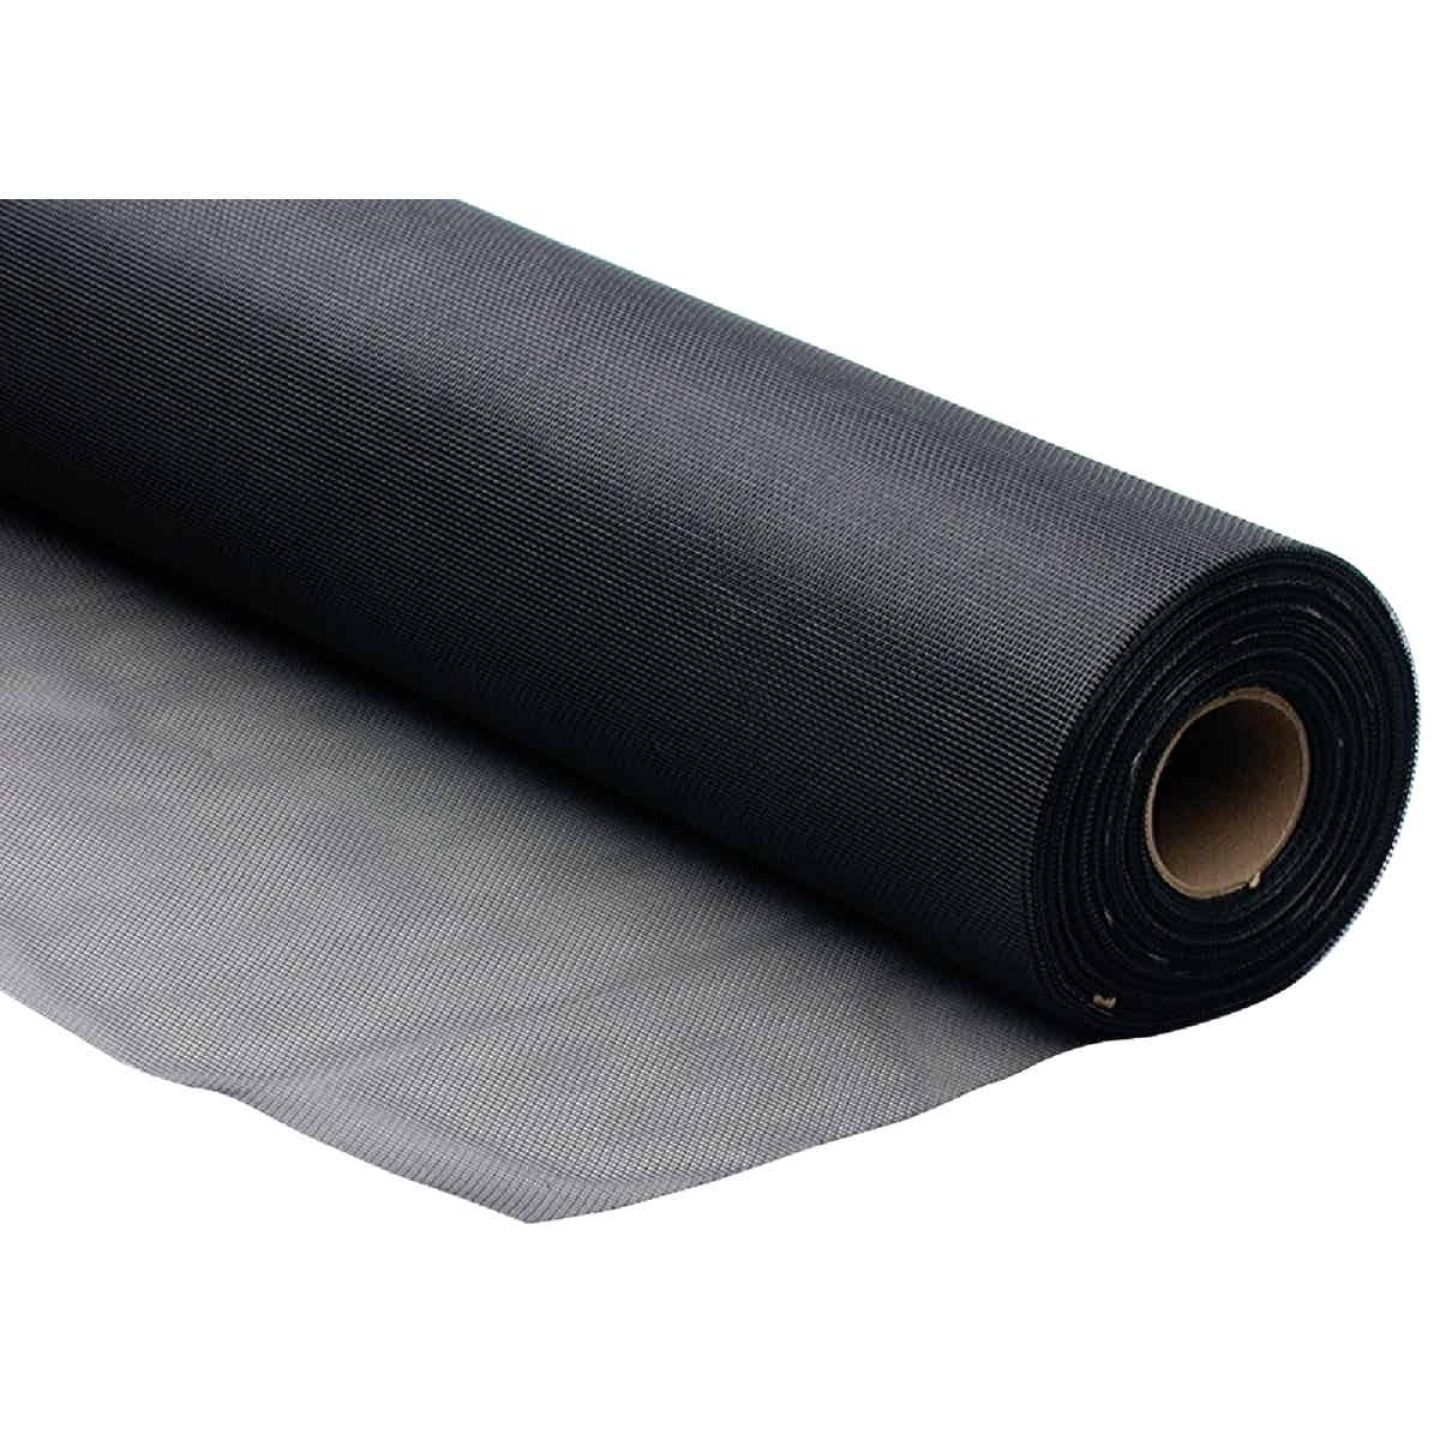 Phifer 36 In. x 100 Ft. Charcoal Fiberglass Mesh Screen Cloth Image 3